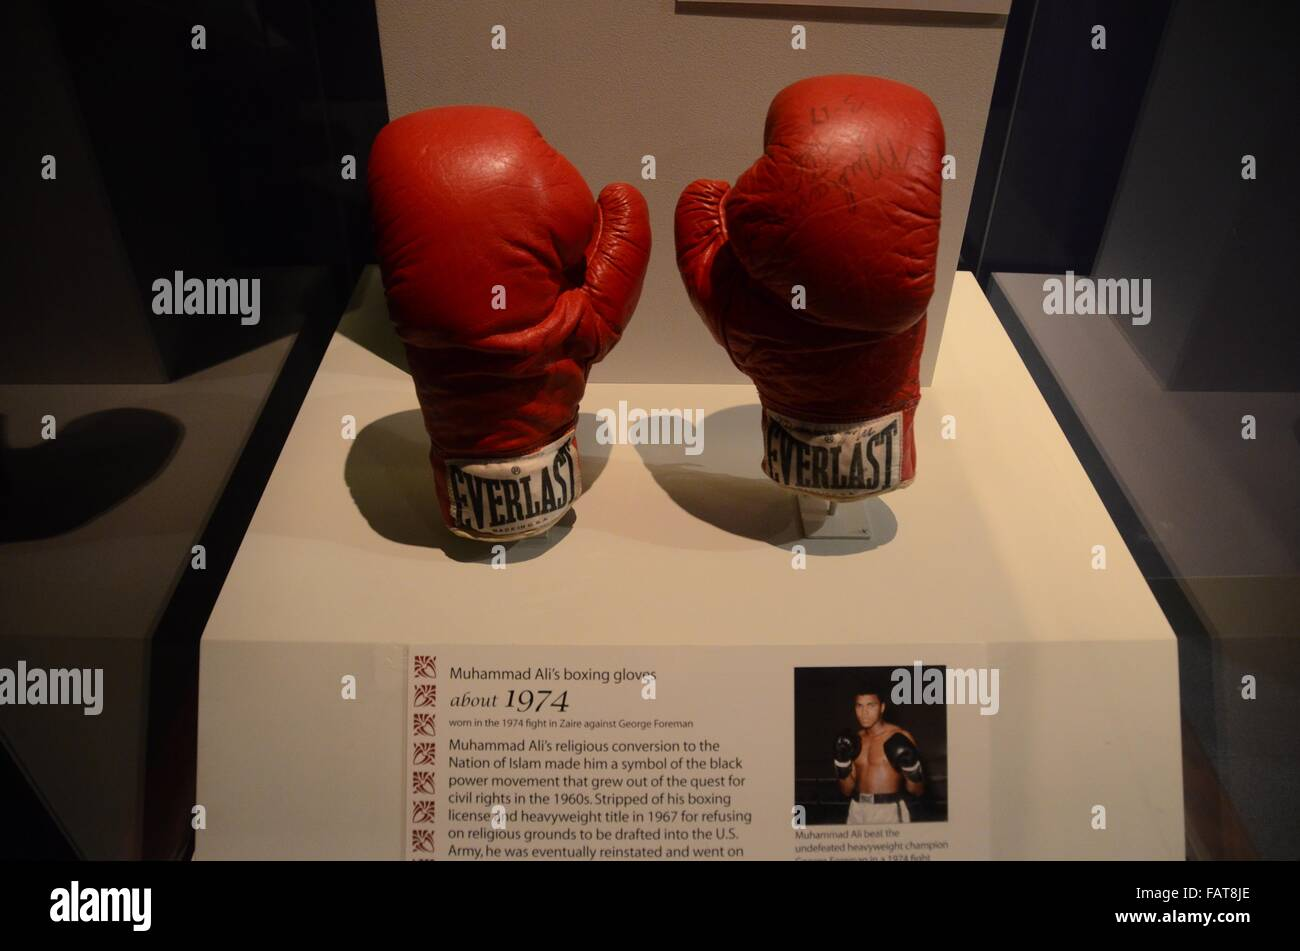 National Museum of American History muhammed ali gloves rumble in the jungle 1974 Stock Photo